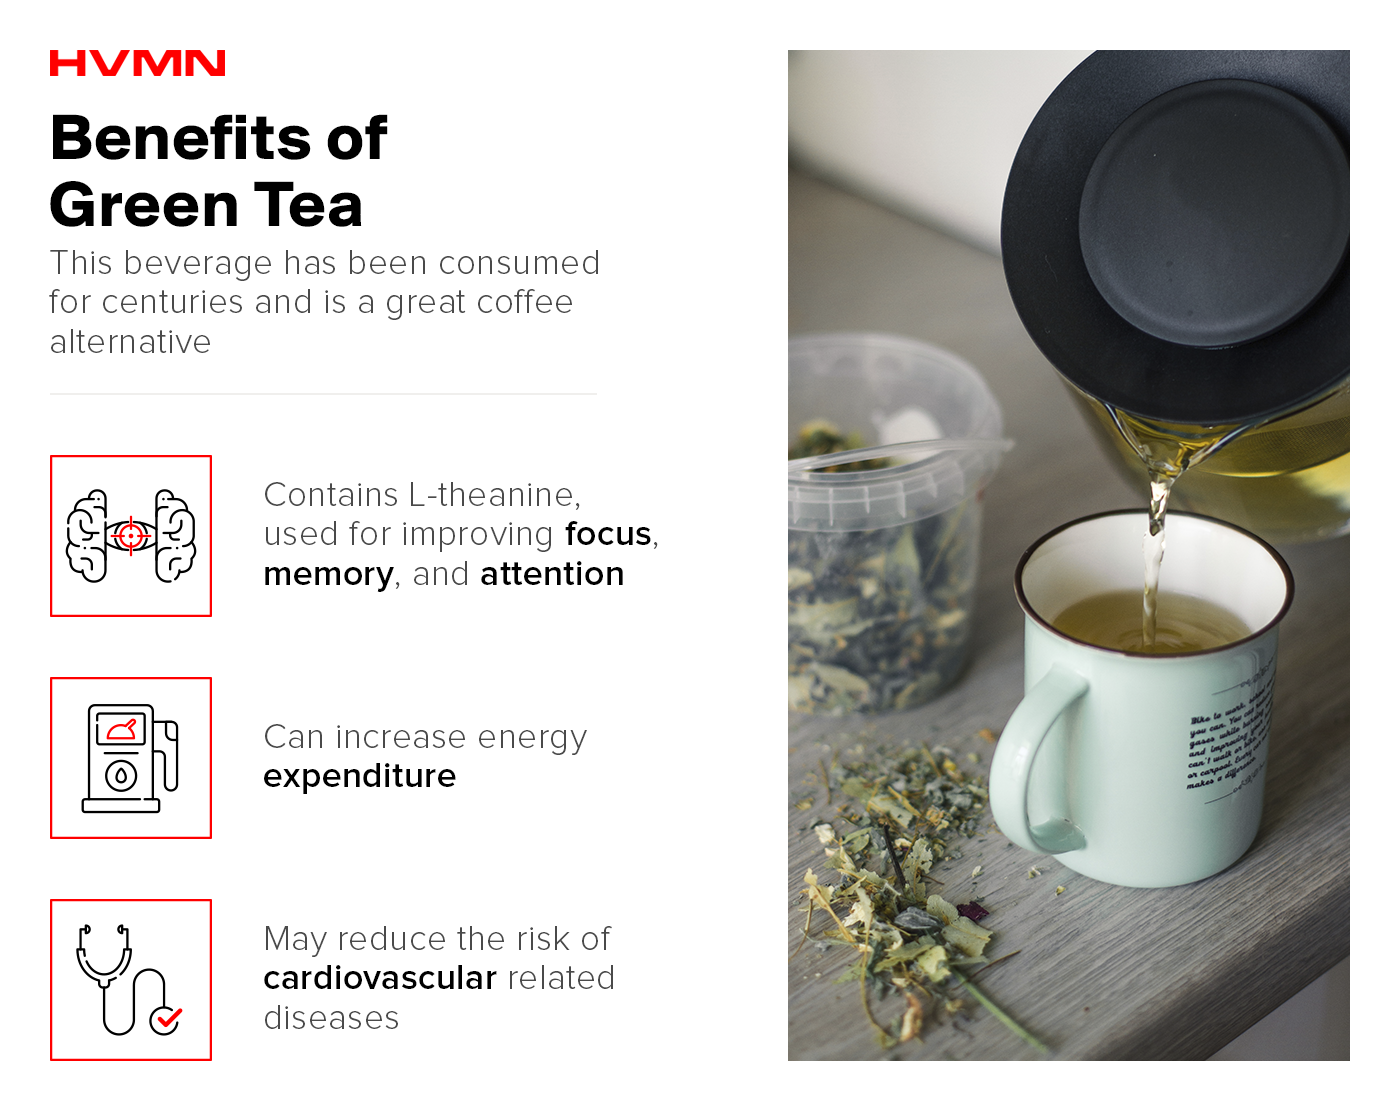 An image of a cup of tea being poured, with icons of a brain, a gas meter and a stethoscope, showing the benefits of green tea